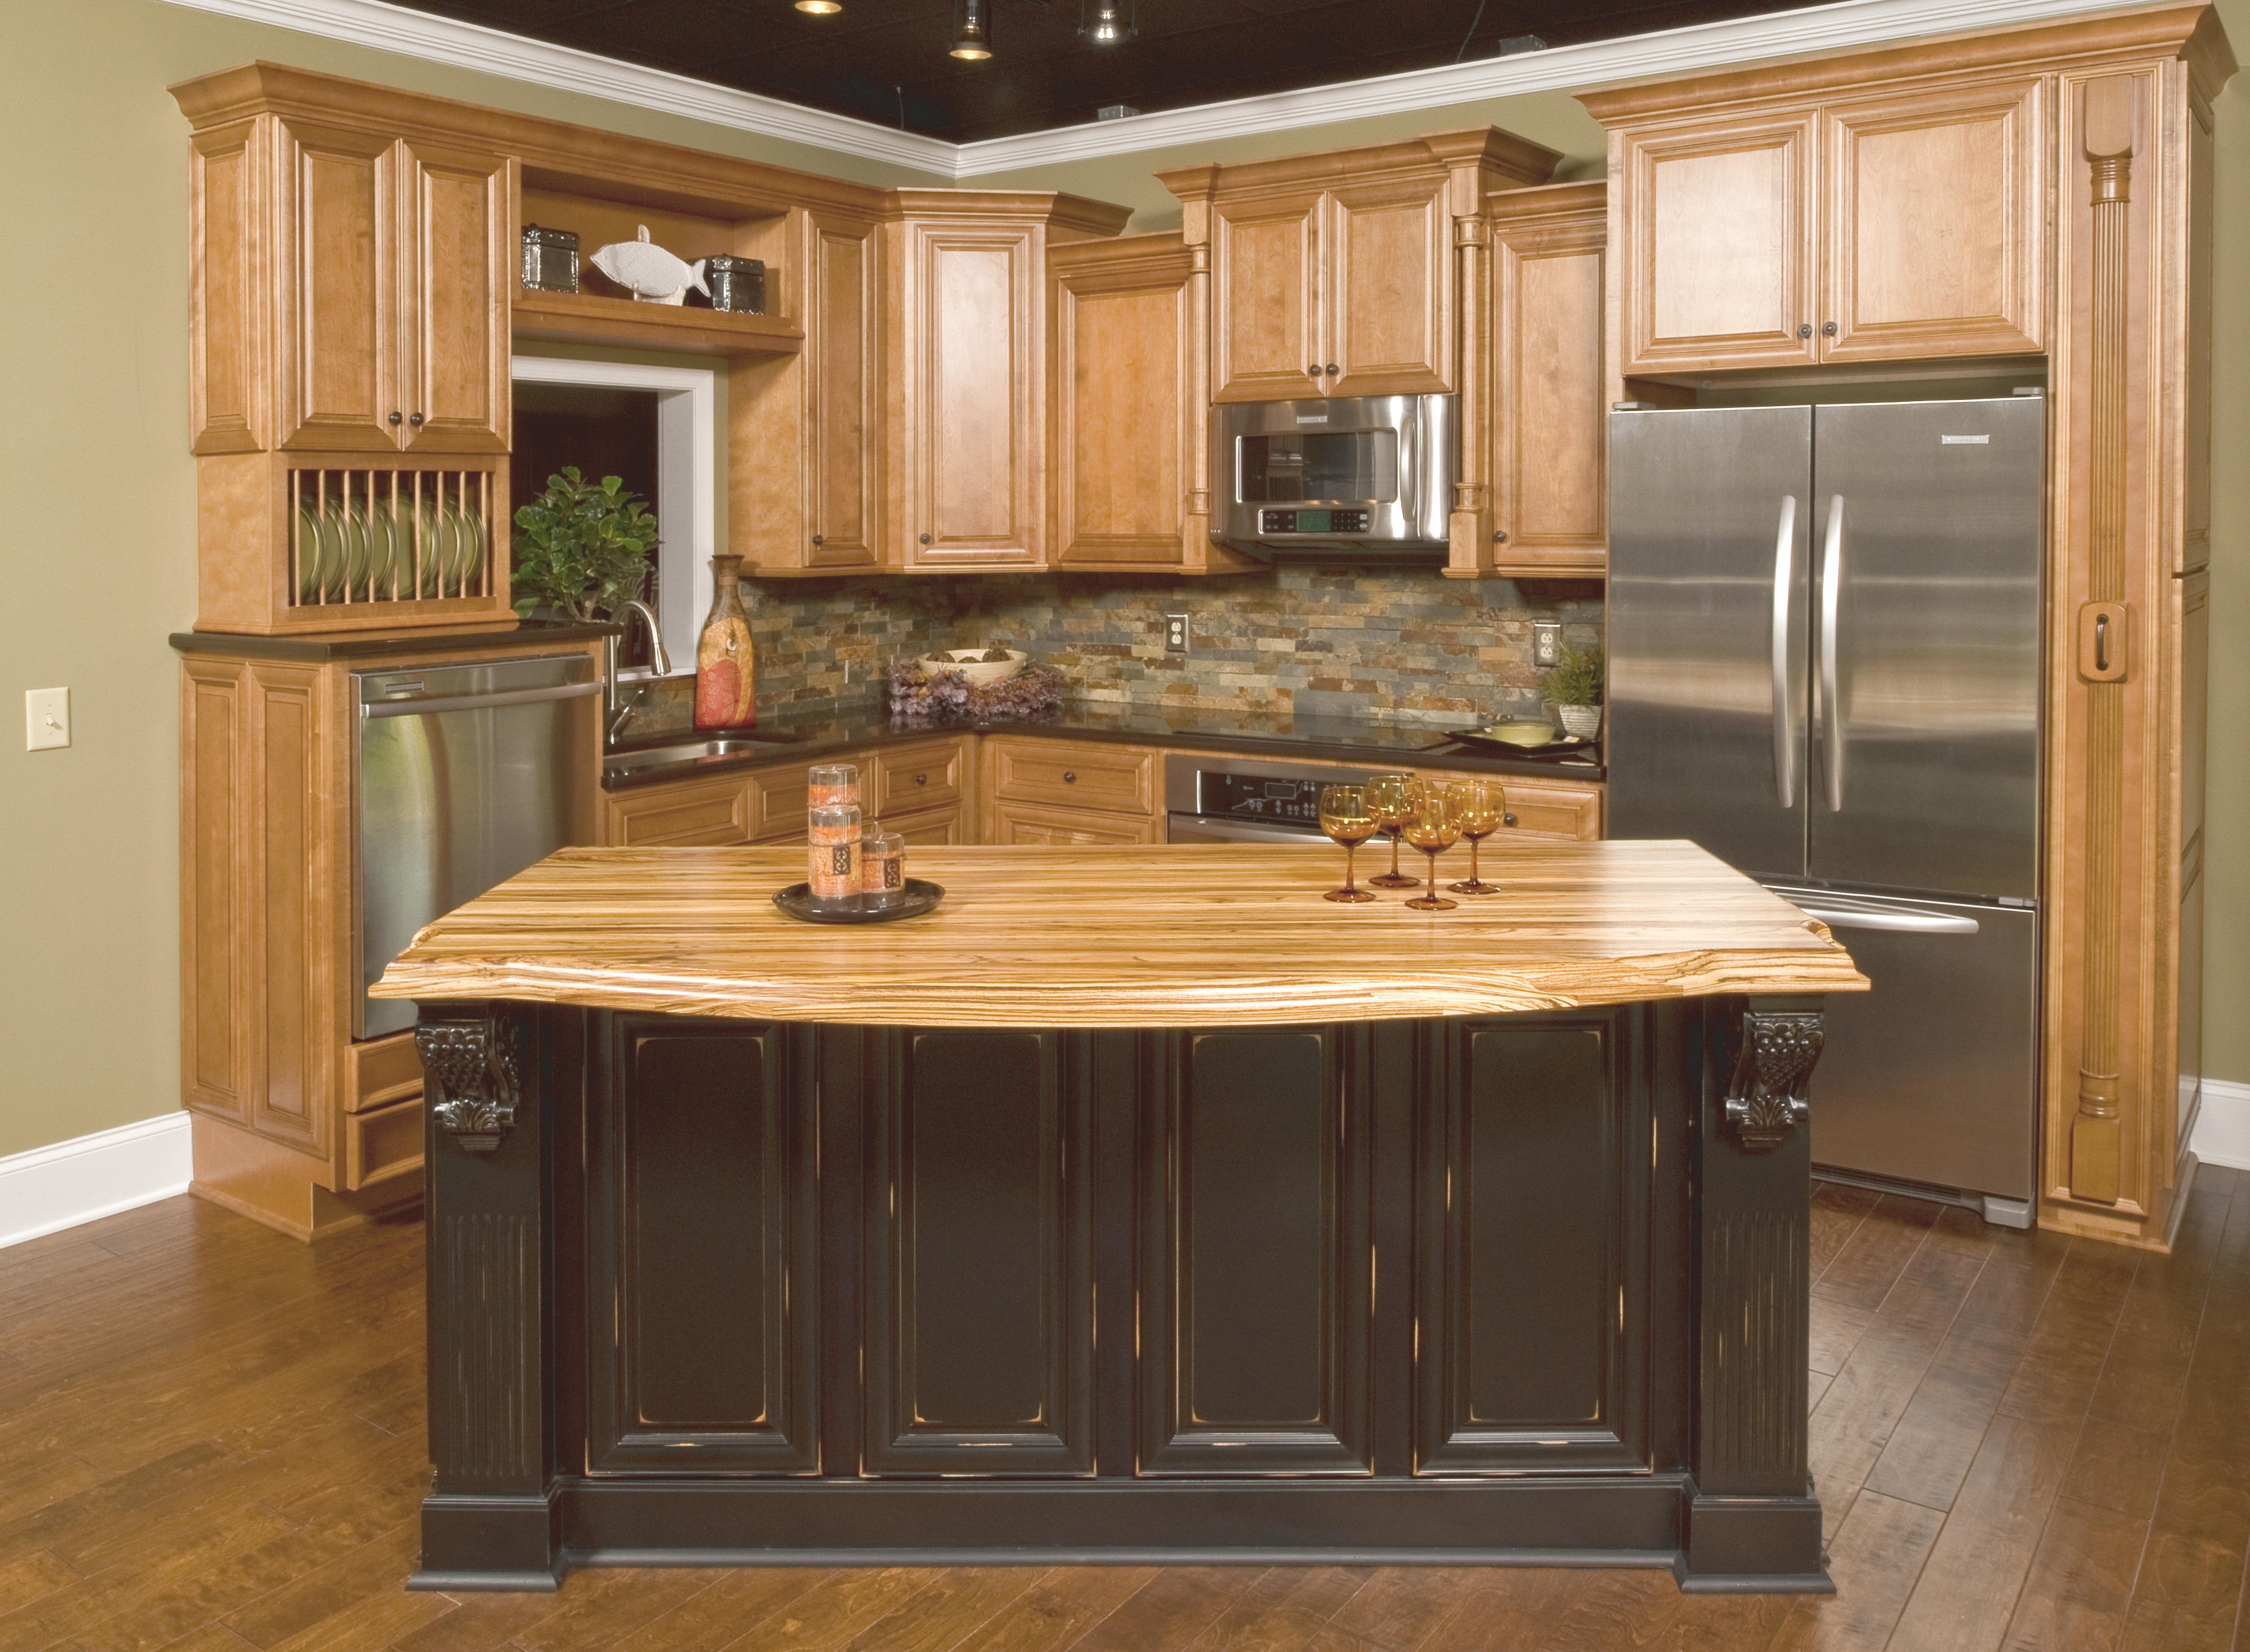 Brown Weathered Kitchen Cabinets